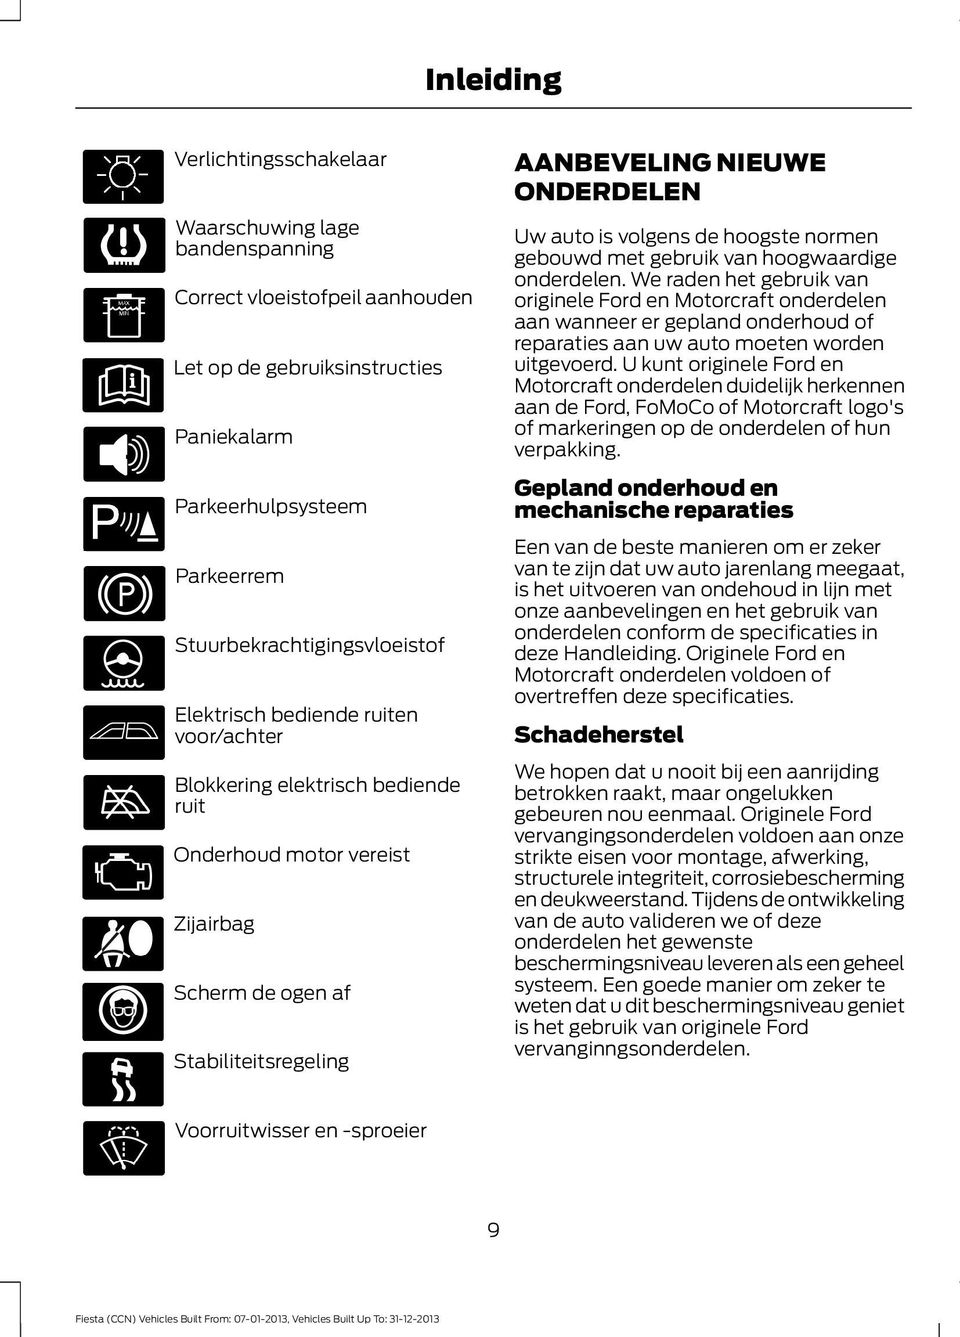 Ford Fiesta Instructieboekje Pdf